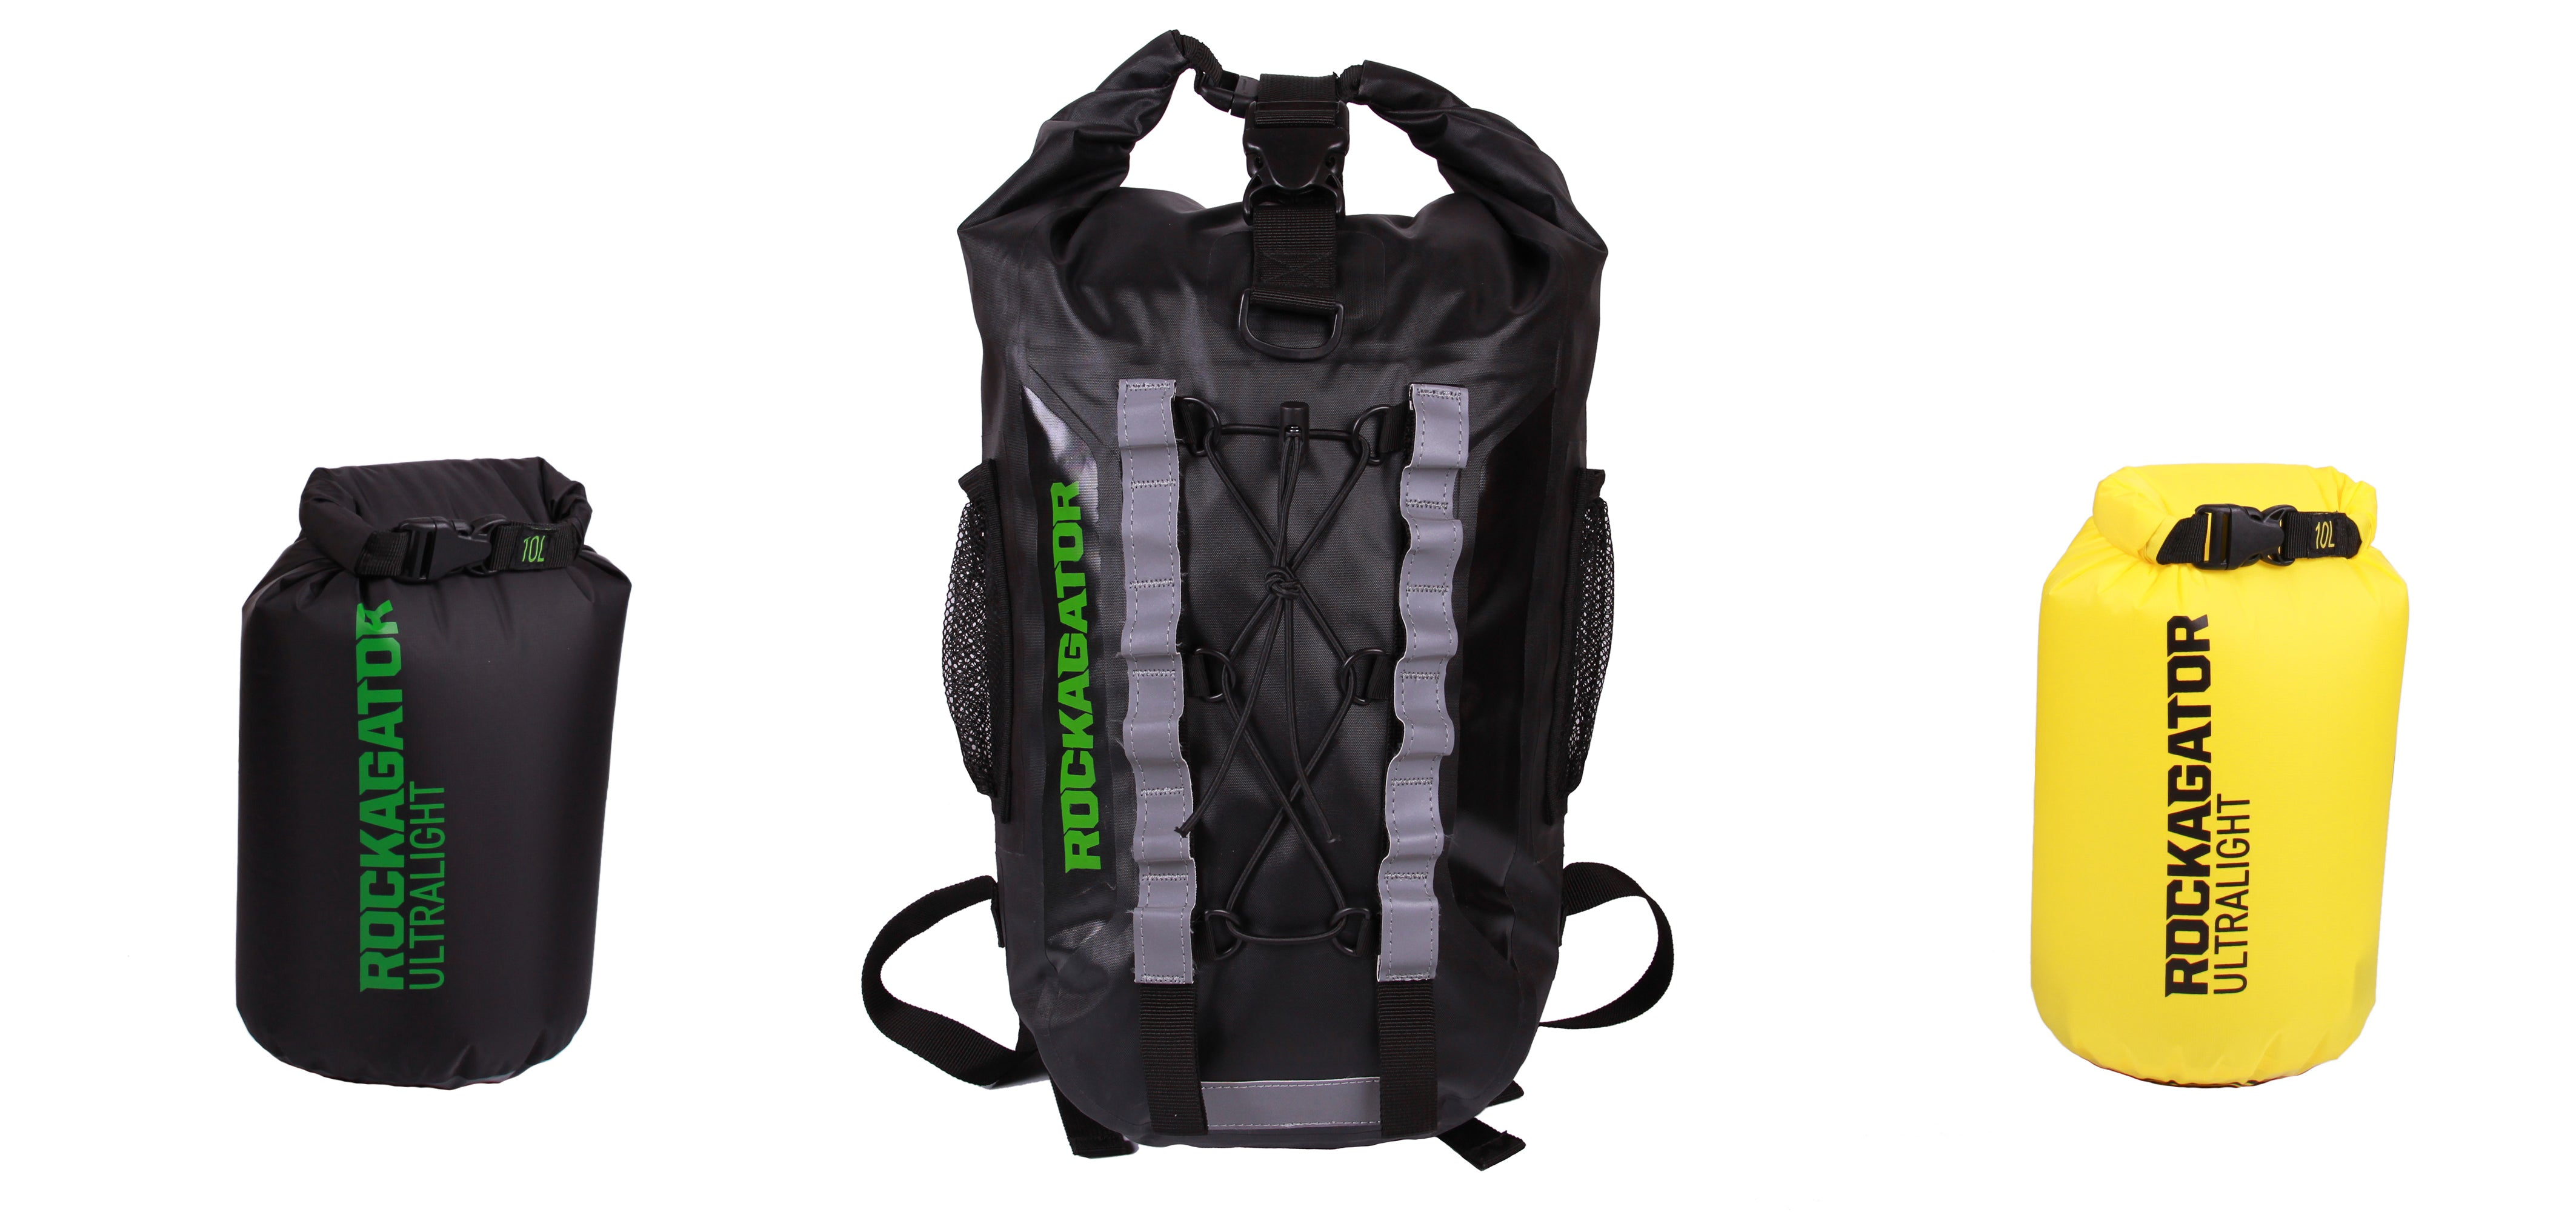 Bundle Special Firebreak Ultralight 25-Liter Waterproof Backpack and 2 Bonus Dry Bags